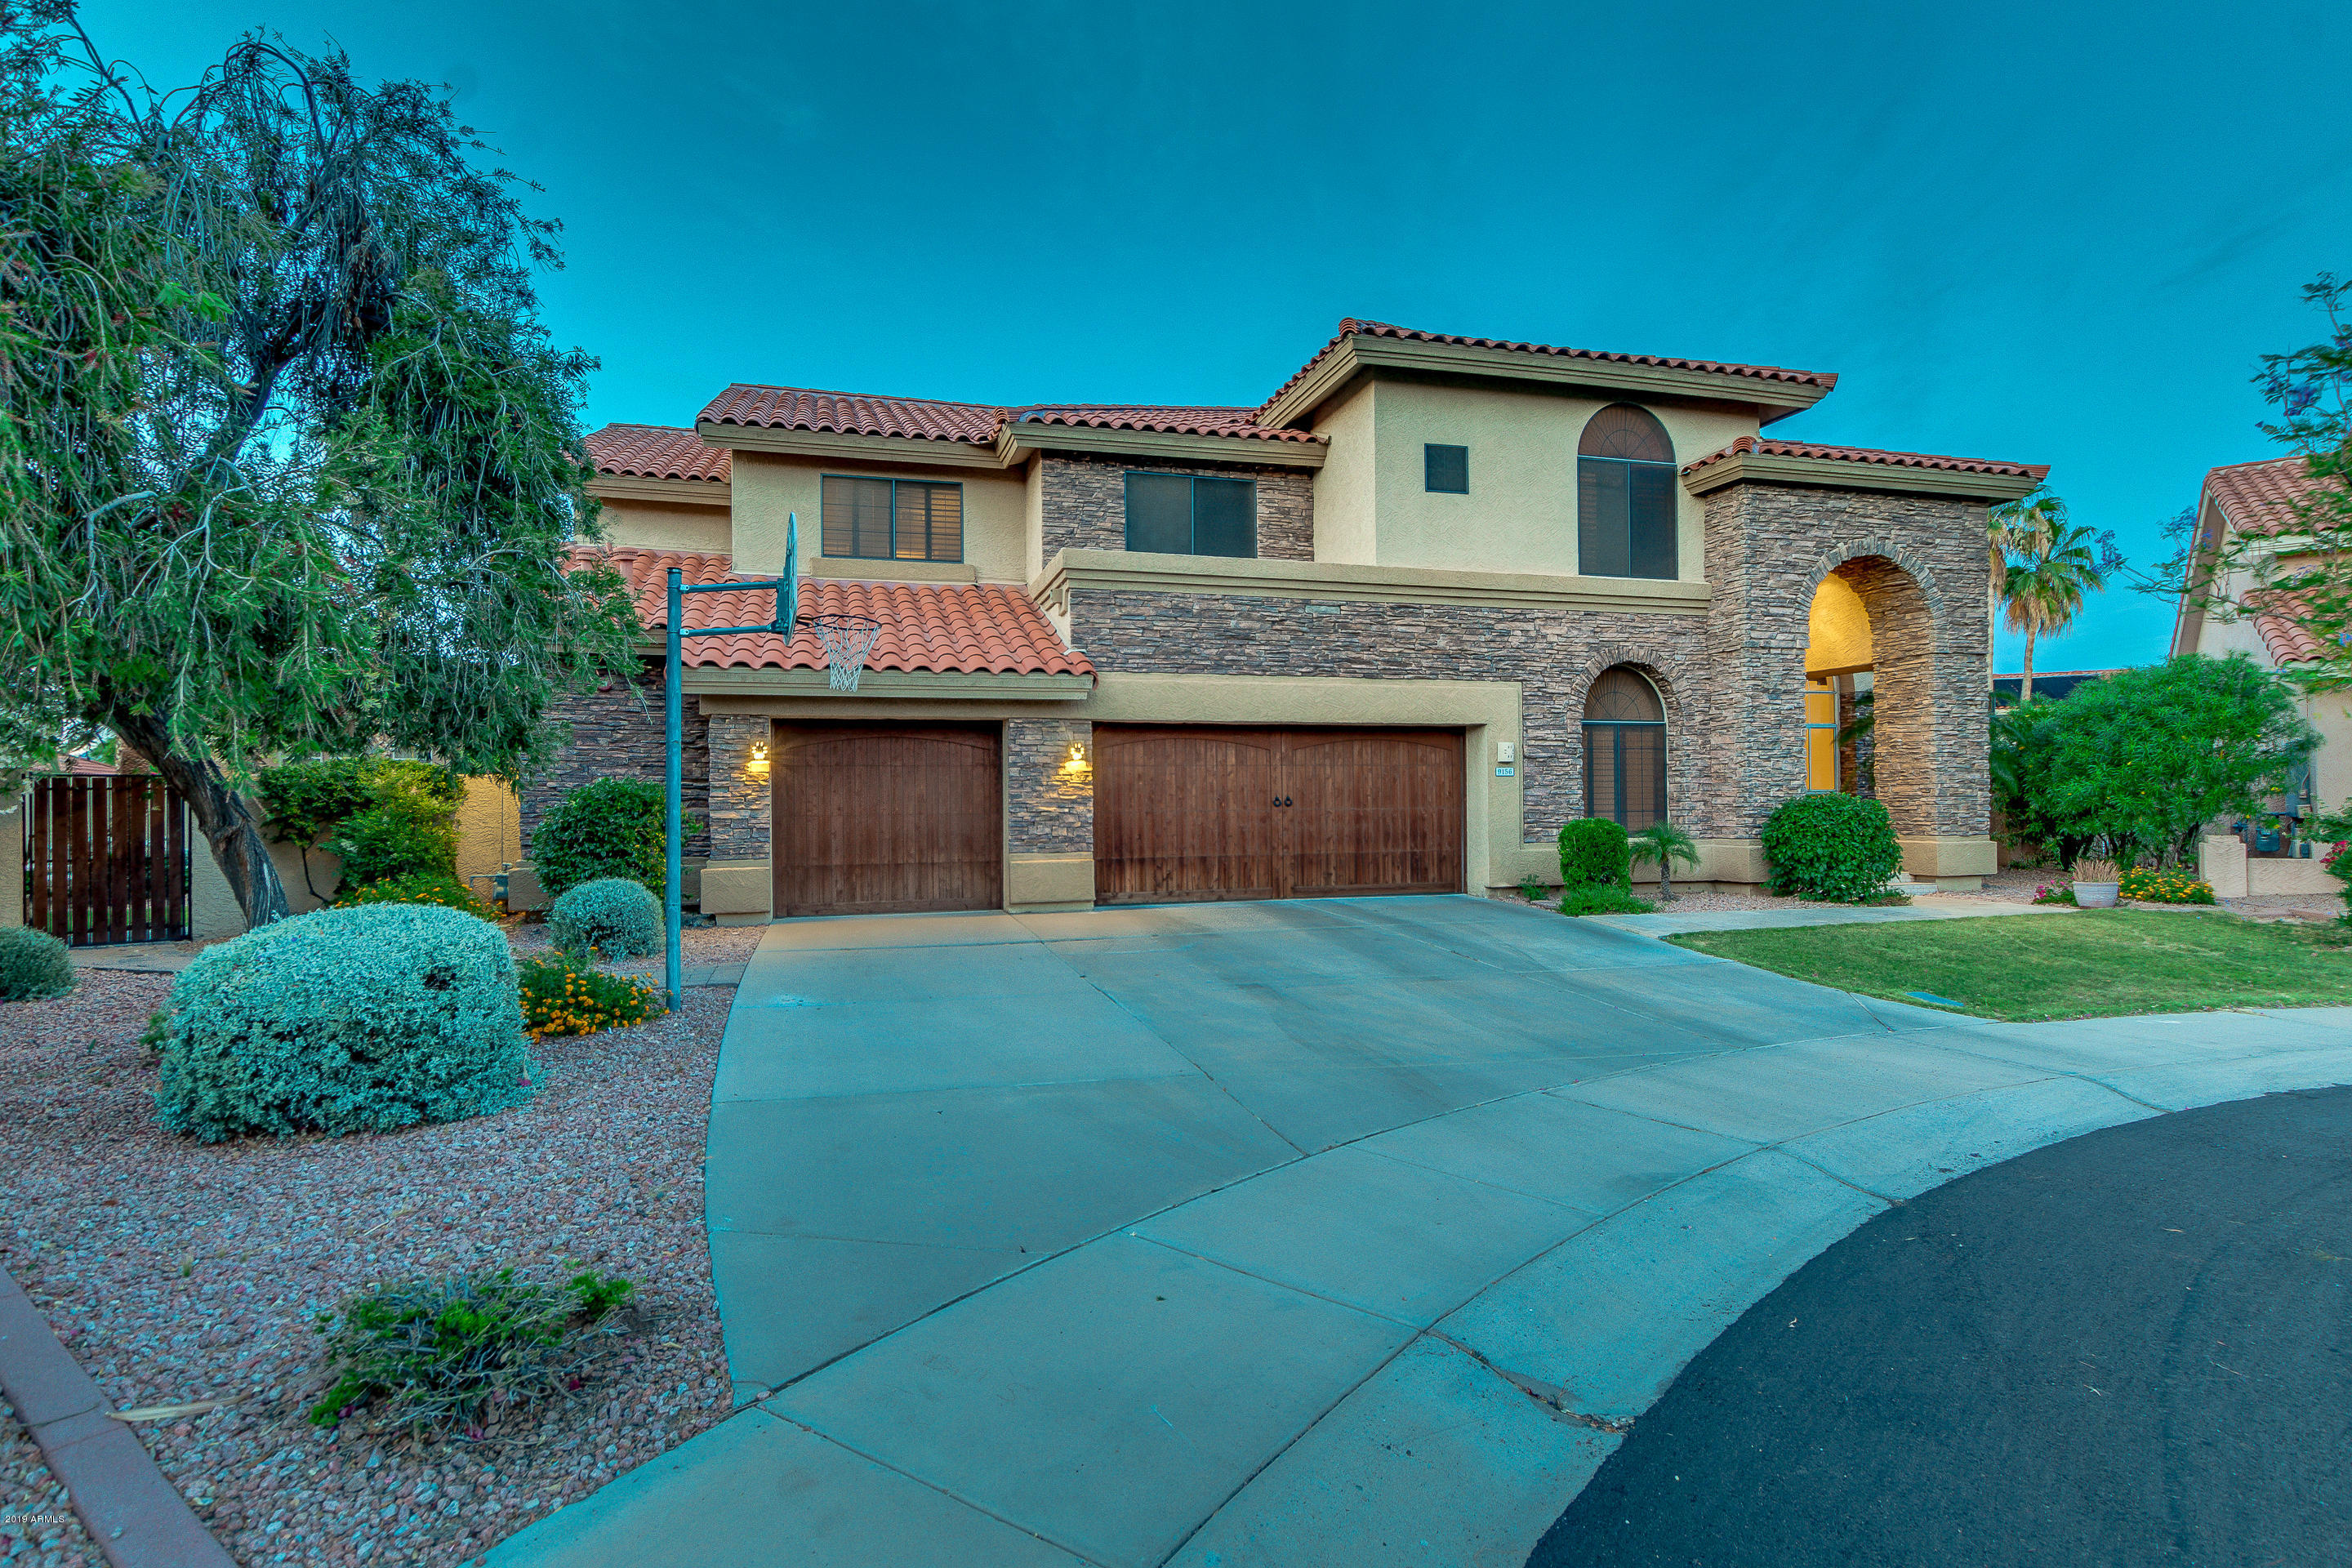 9156 N 108TH Way, Scottsdale AZ 85259